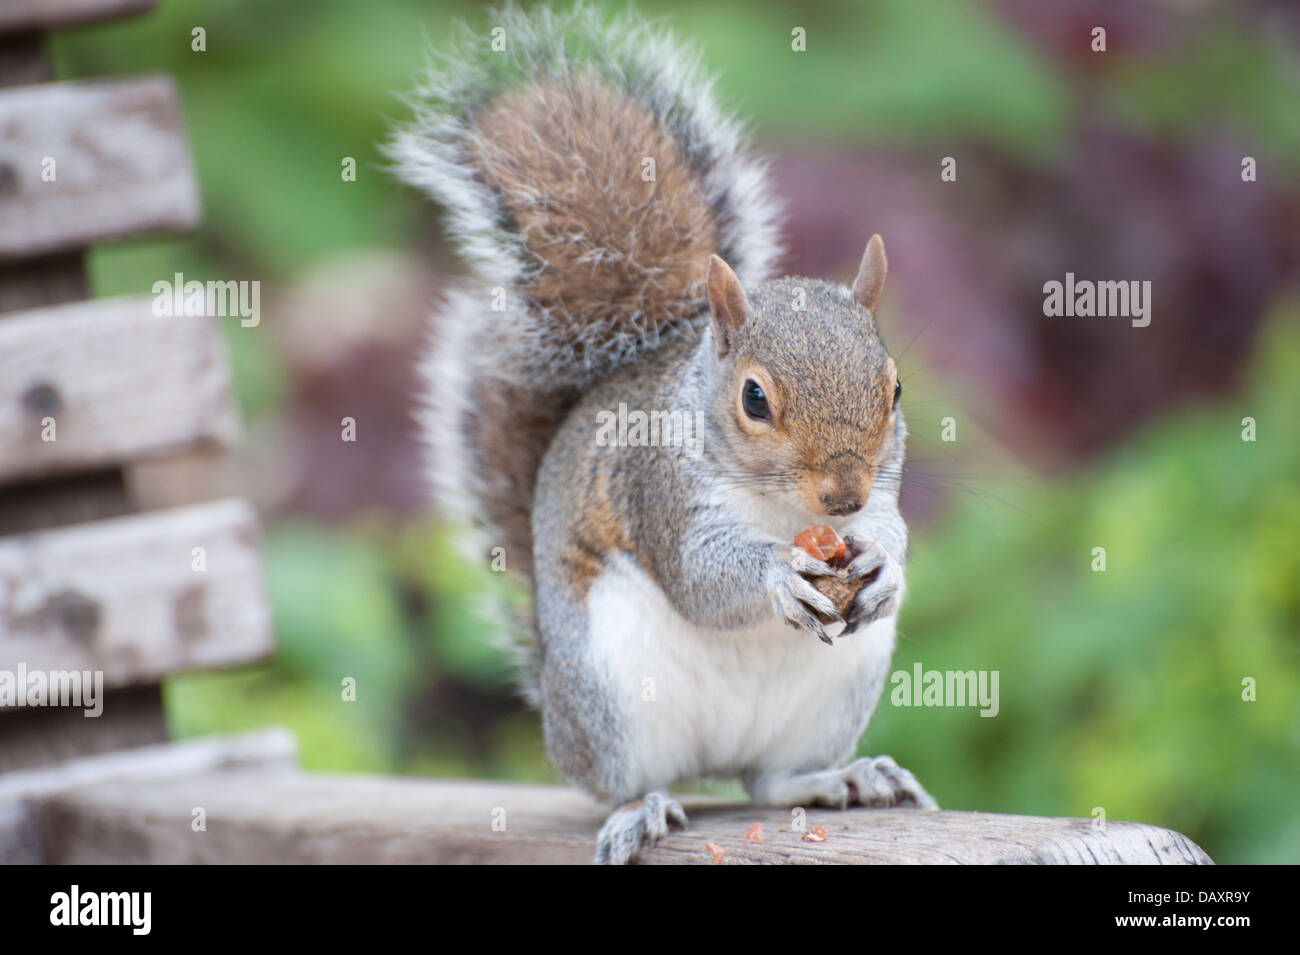 Squirrel Eating Nut On Park Bench Close Up Squirrel